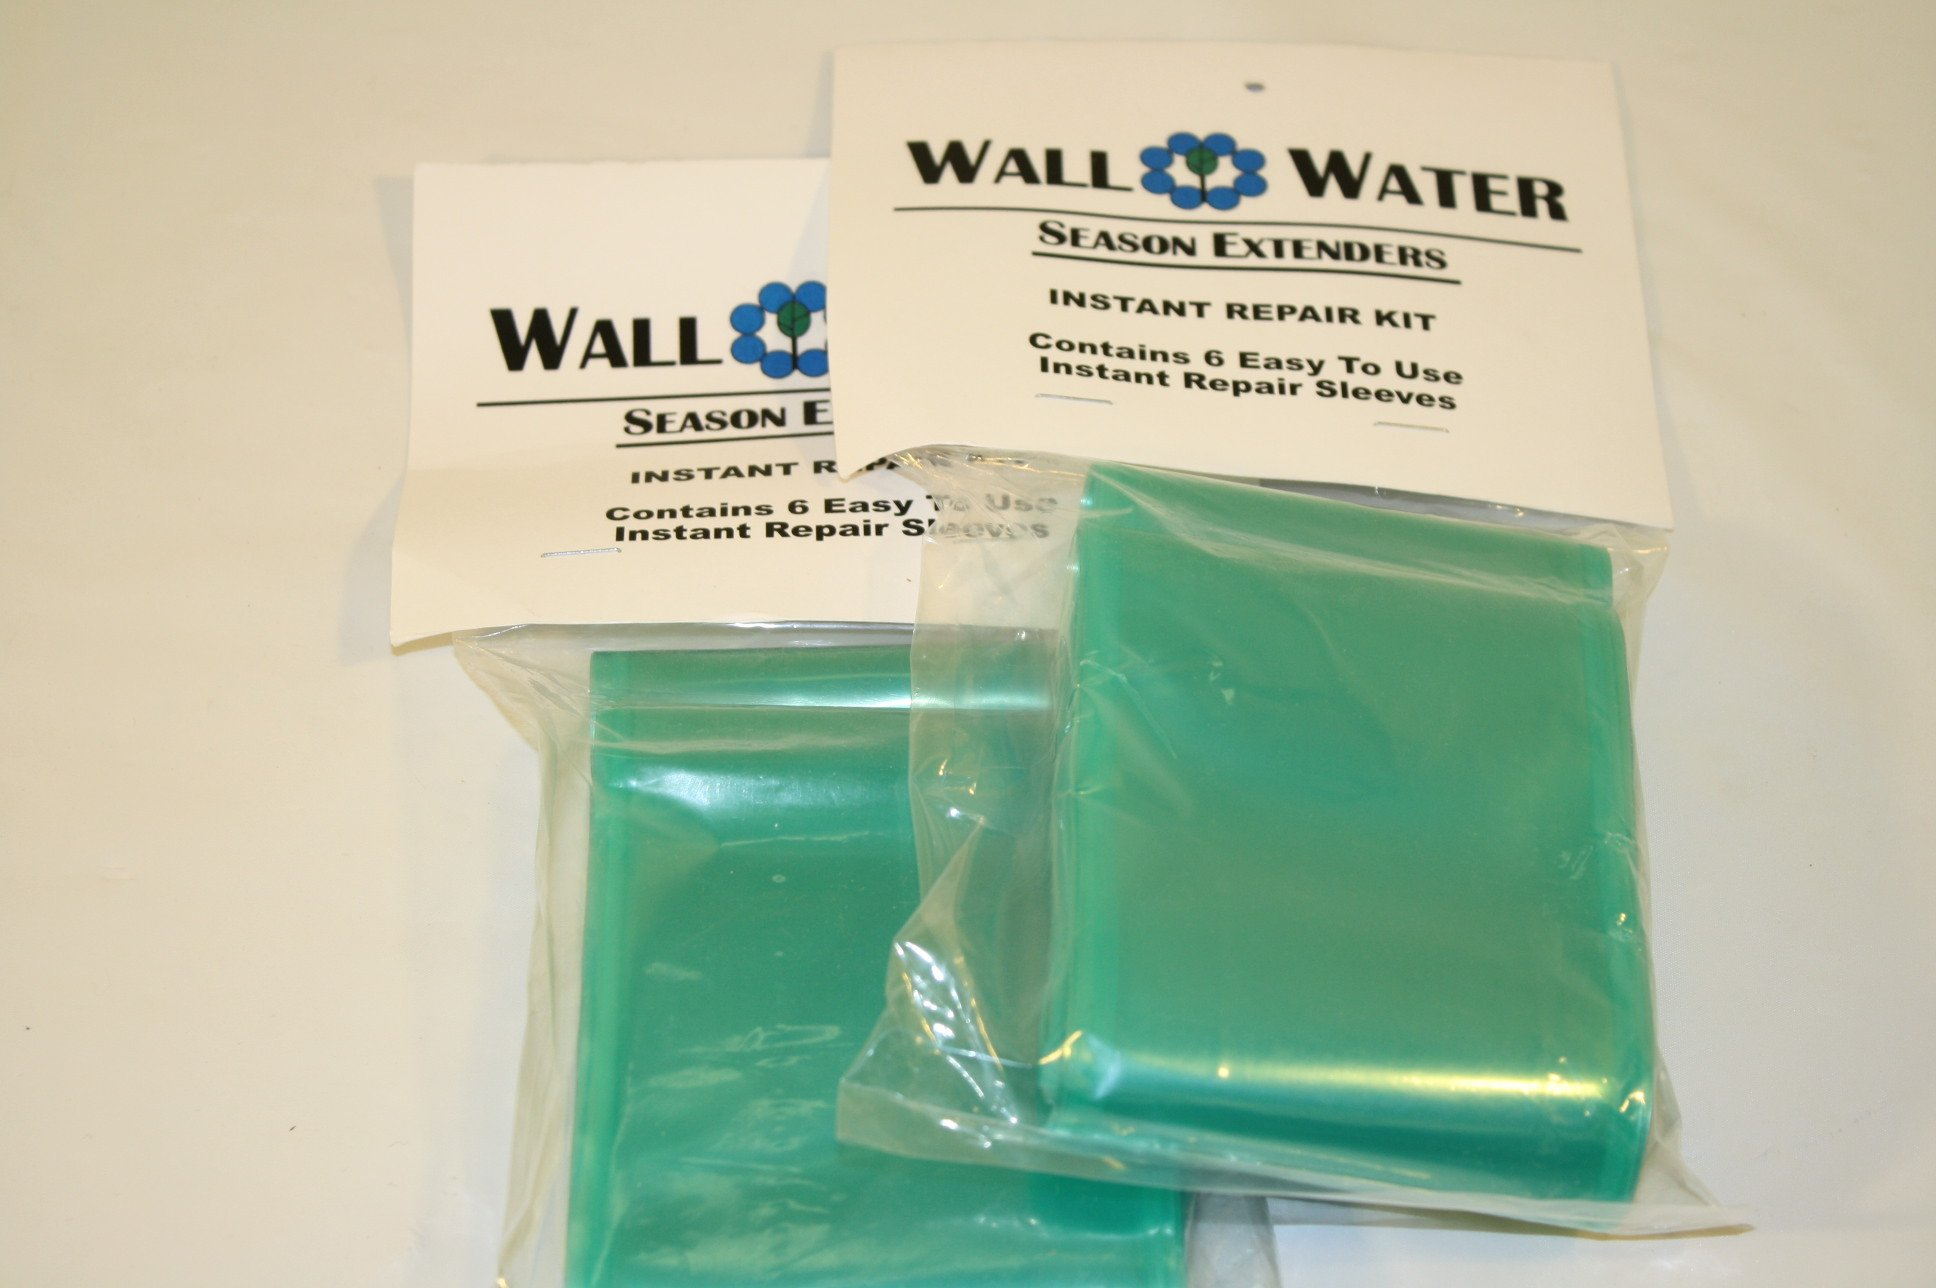 Wall O' Water Repair Kit—6 Pack